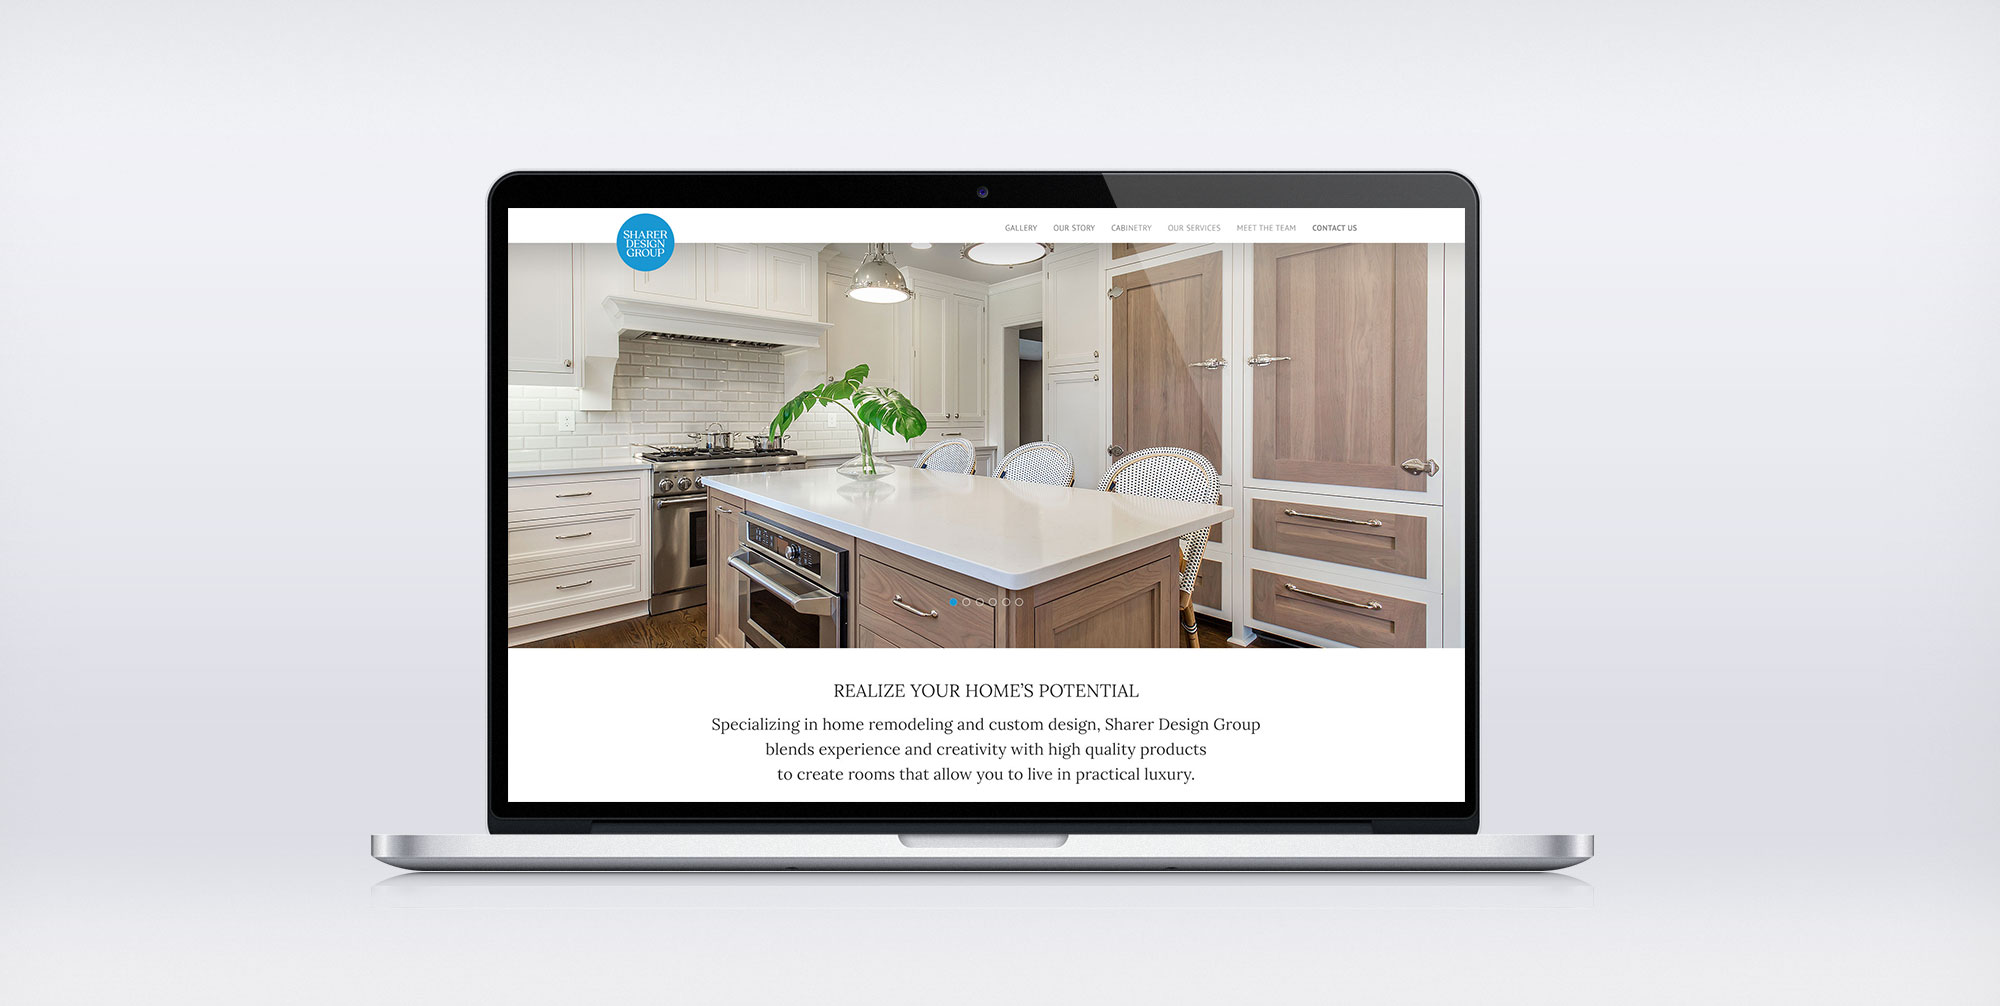 Home remodeling company website design